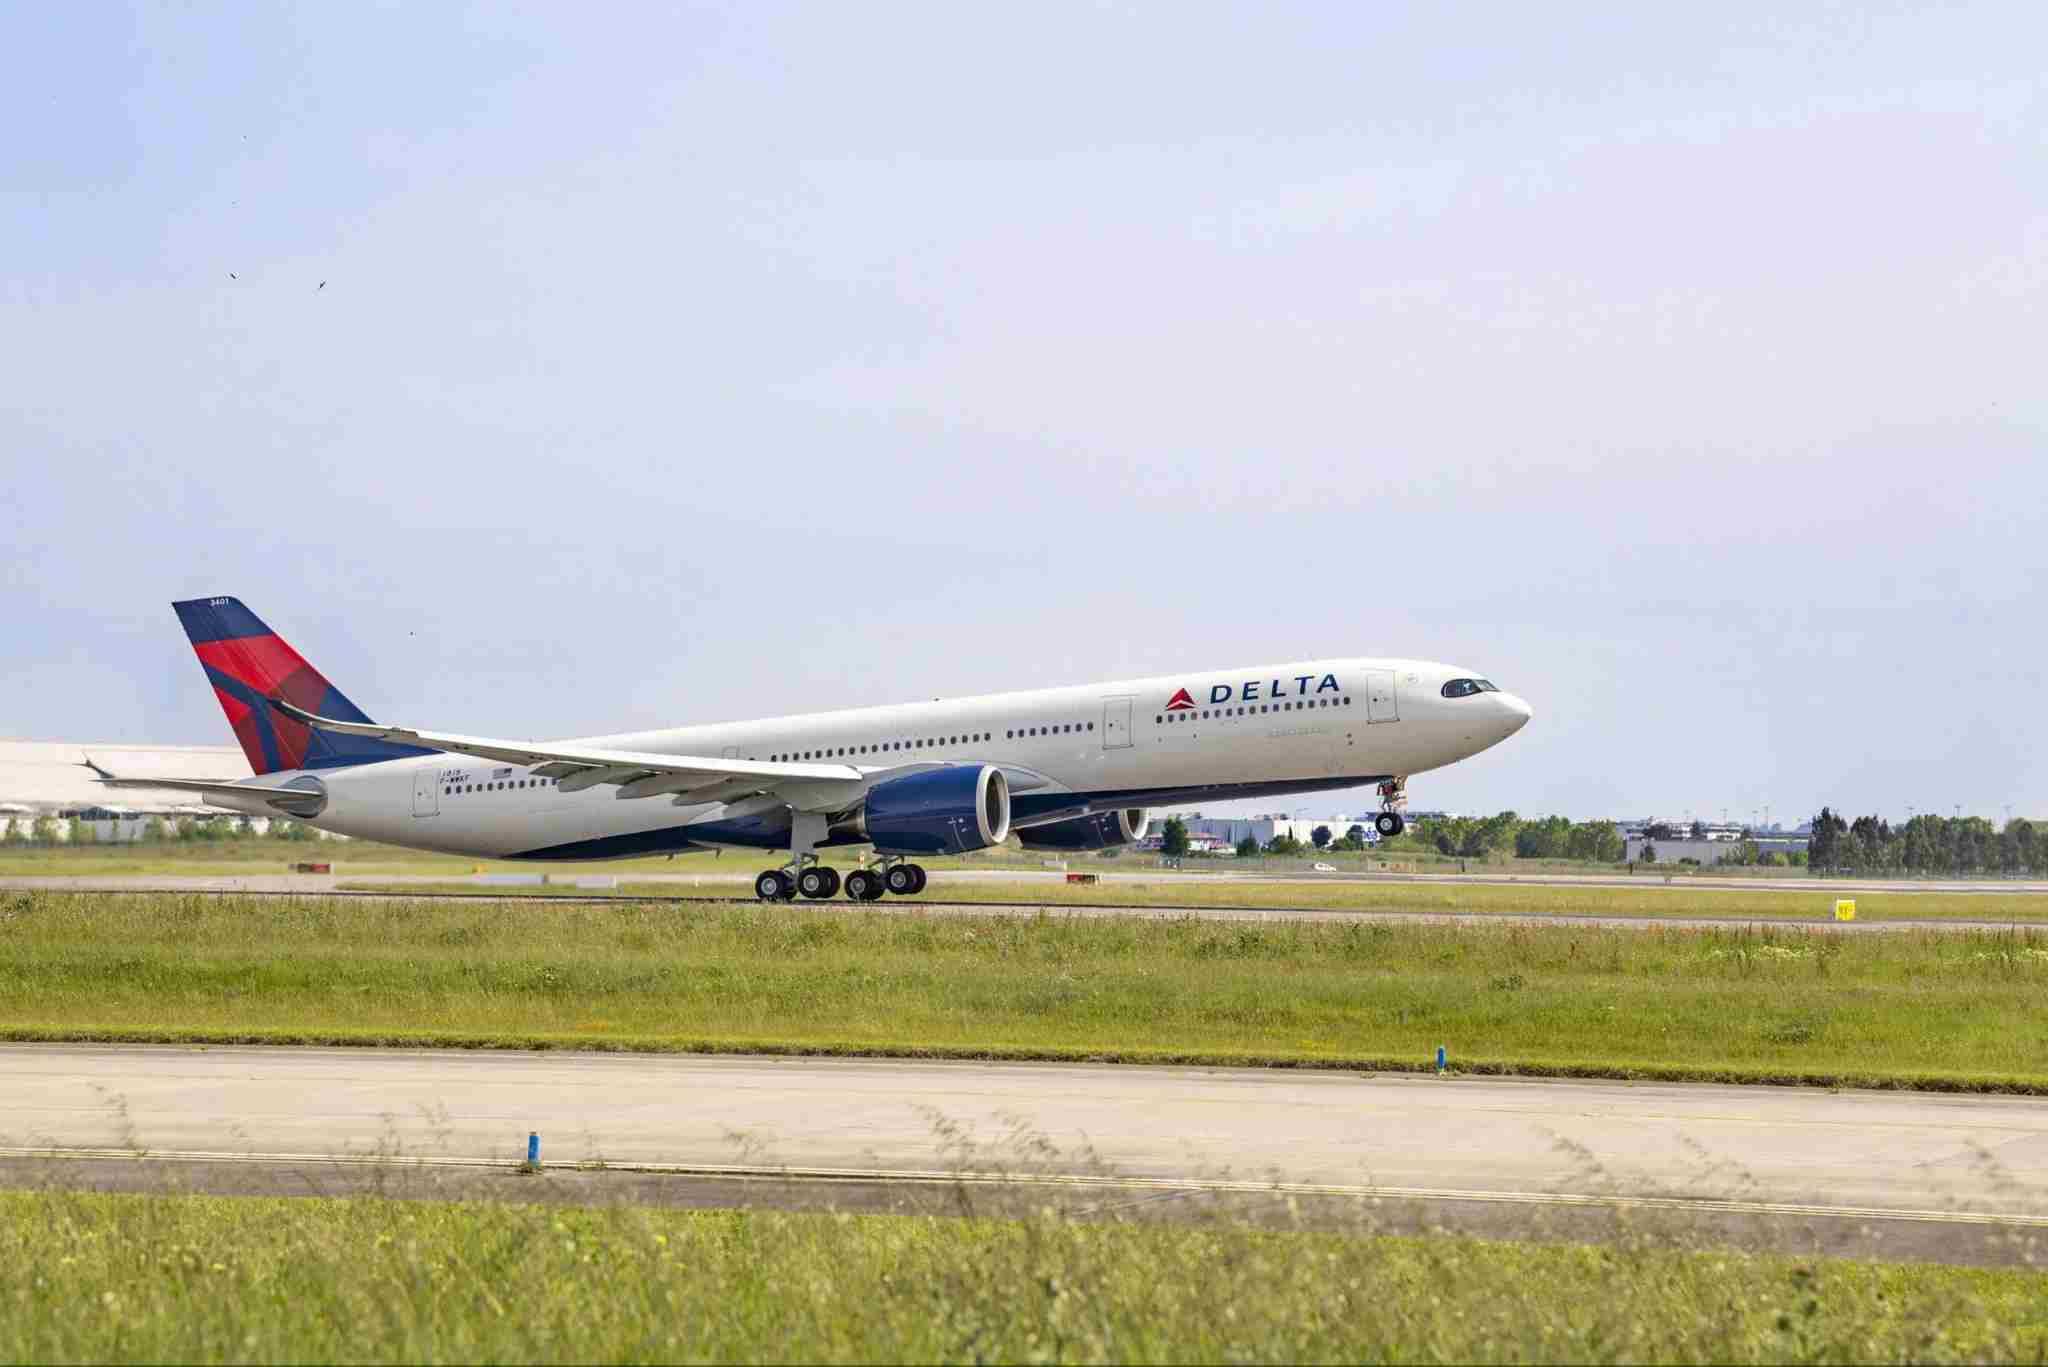 A Delta A330-900 takes off. (Photo courtesy of Airbus)